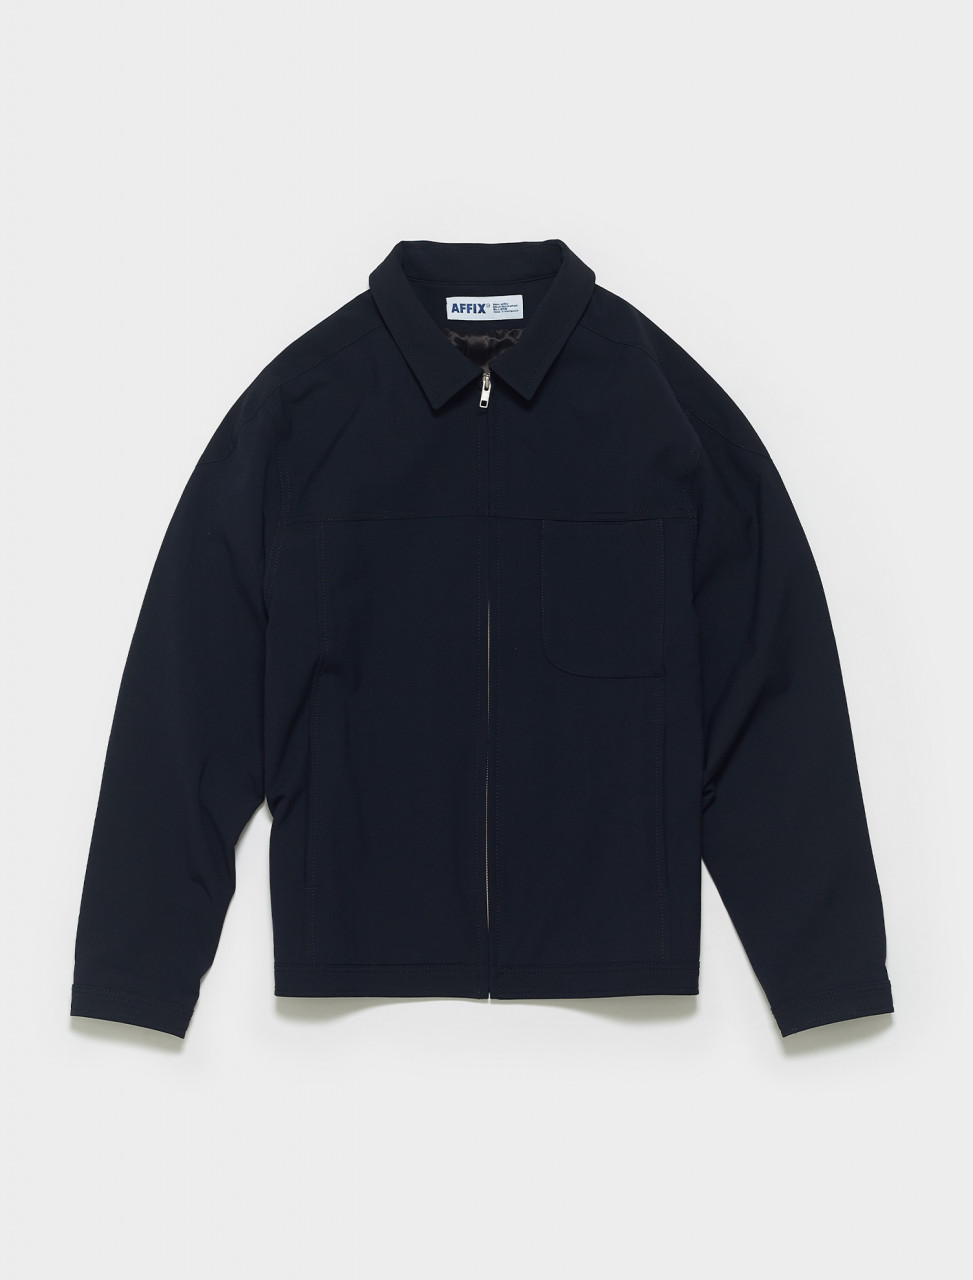 SS21JK02-Dark Navy AFFIX BOXED BLOUSON IN DARK NAVY